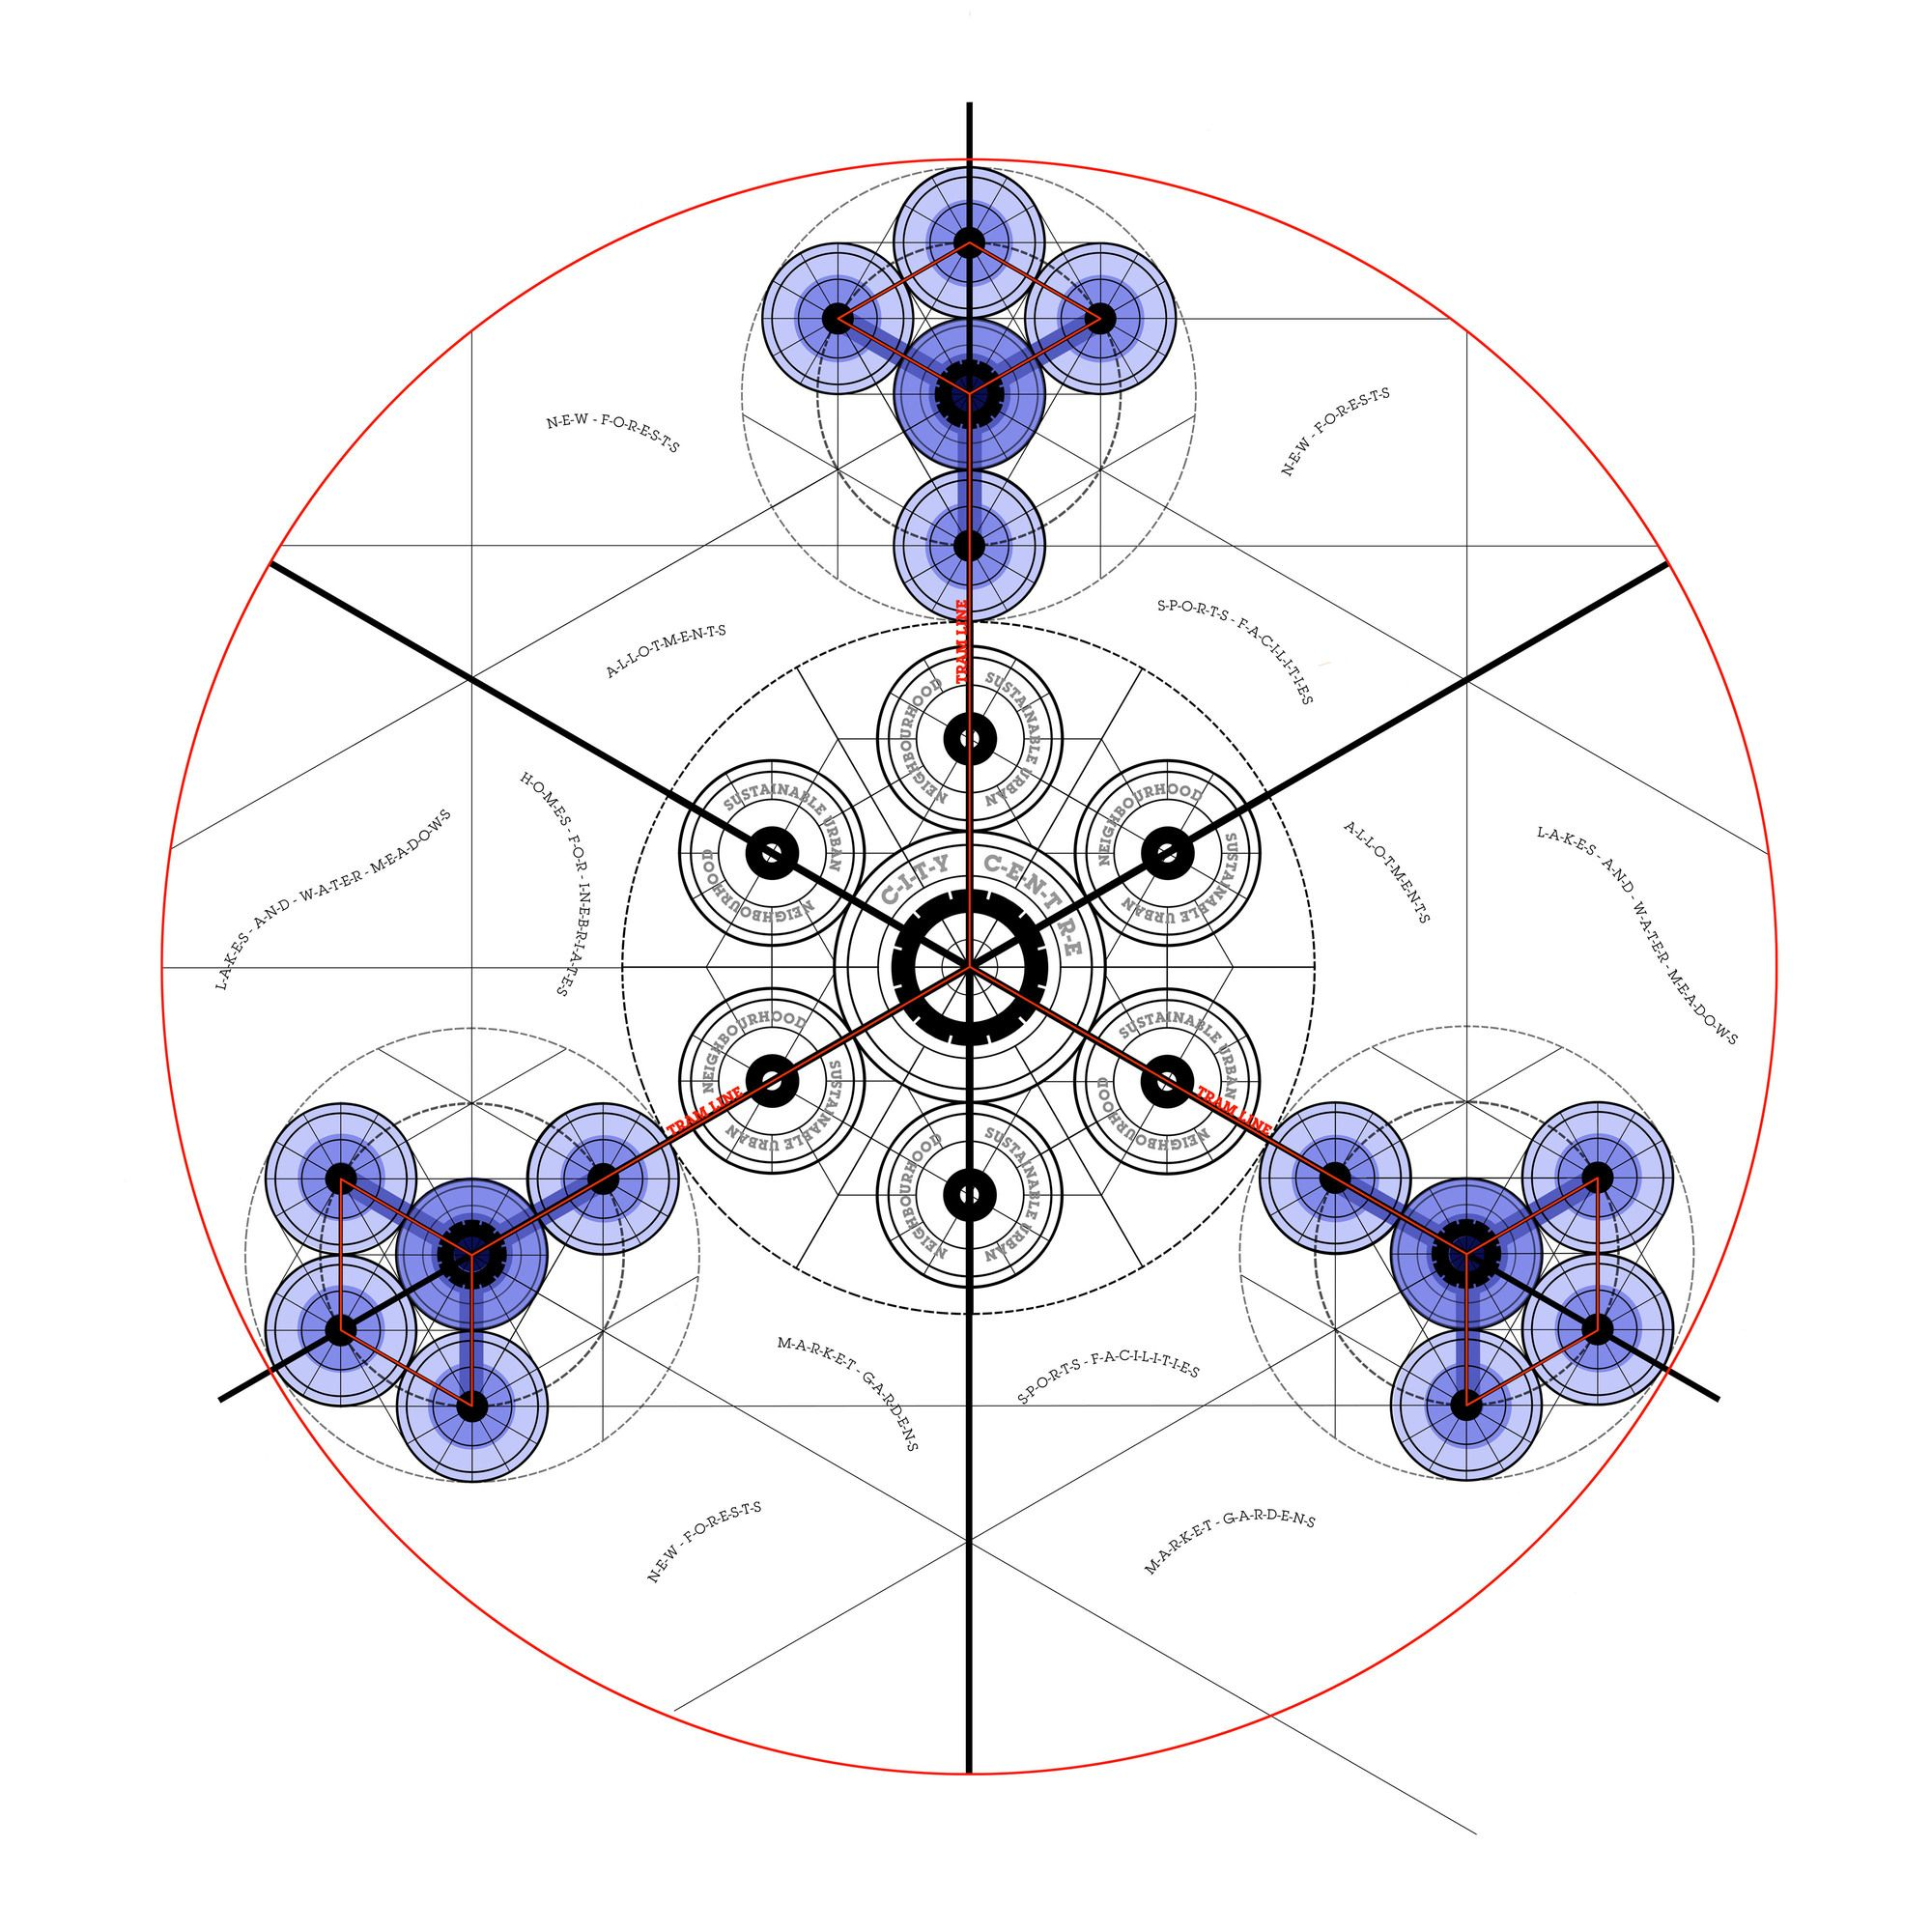 540c47c5c07a808f0a0000bc_urbed-s-bold-proposal-to-reinvigorate-the-garden-city-movement_uxcester_-_snowflake_diagram.jpg (2000×2000)